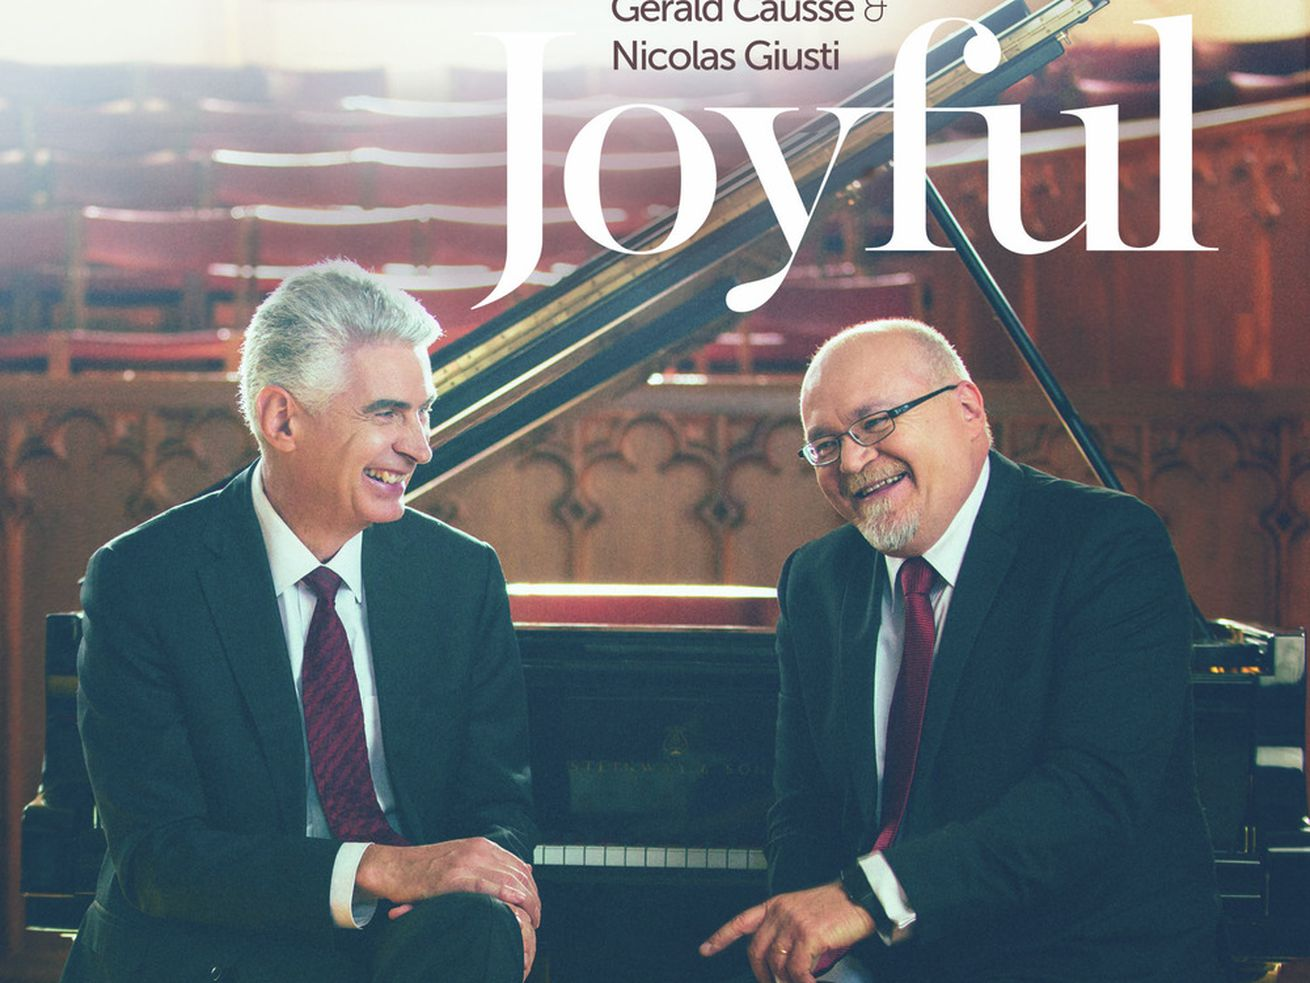 What's new: 'Joyful' shares 6 piano duets from friends Bishop Causse and Nicolas Giusti